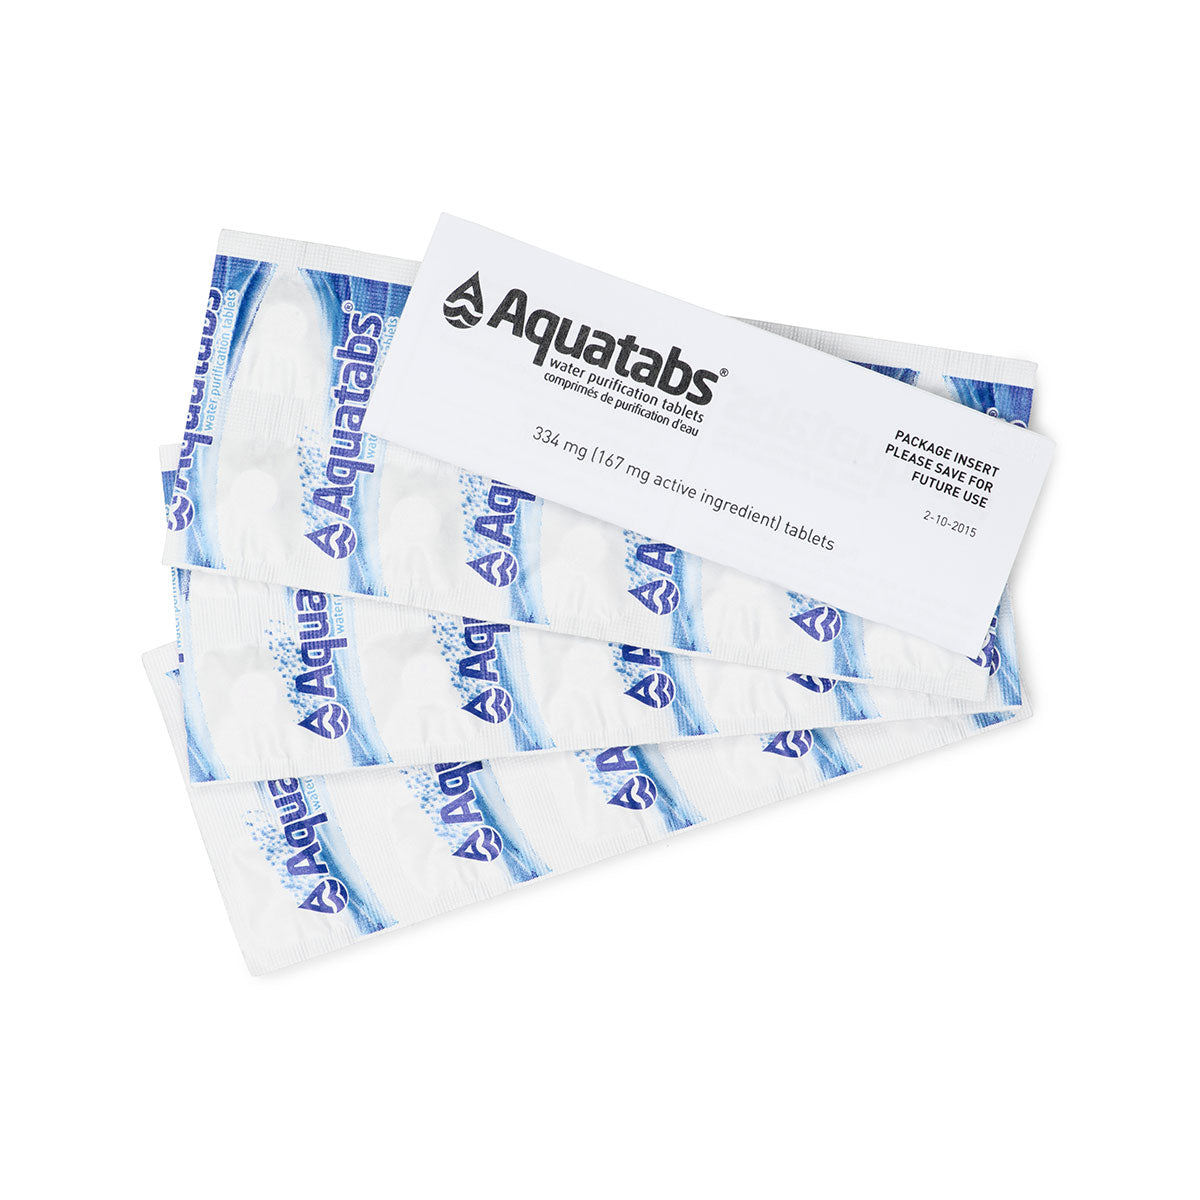 Aquatabs-Water-Purification-Tablets-334mg-Foil-Package-Instructions